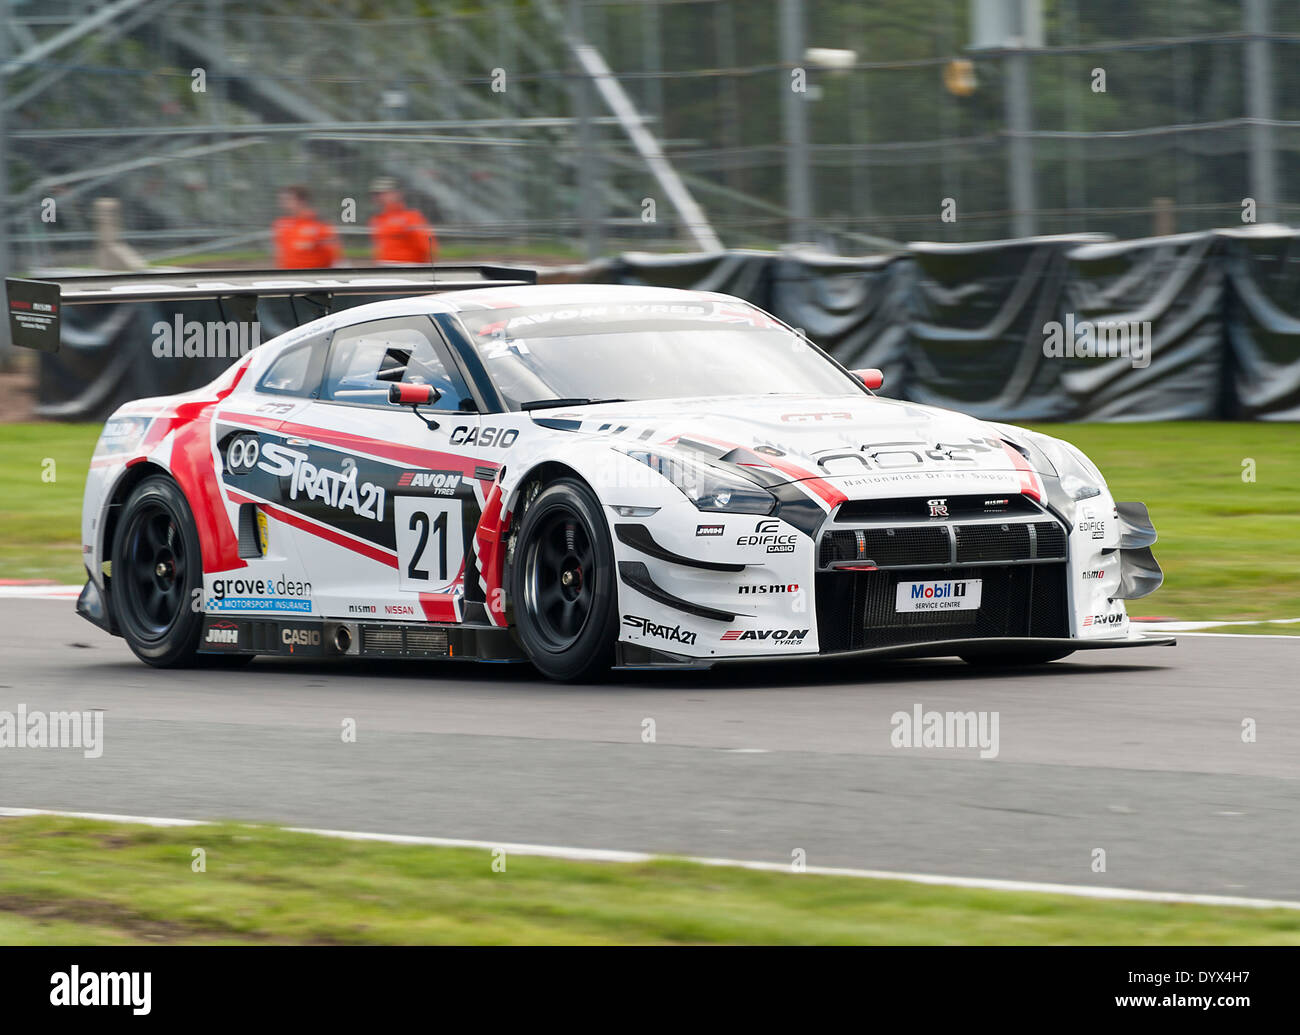 Nissan Gt R Gt3 Sports Racing Car In The British Gt